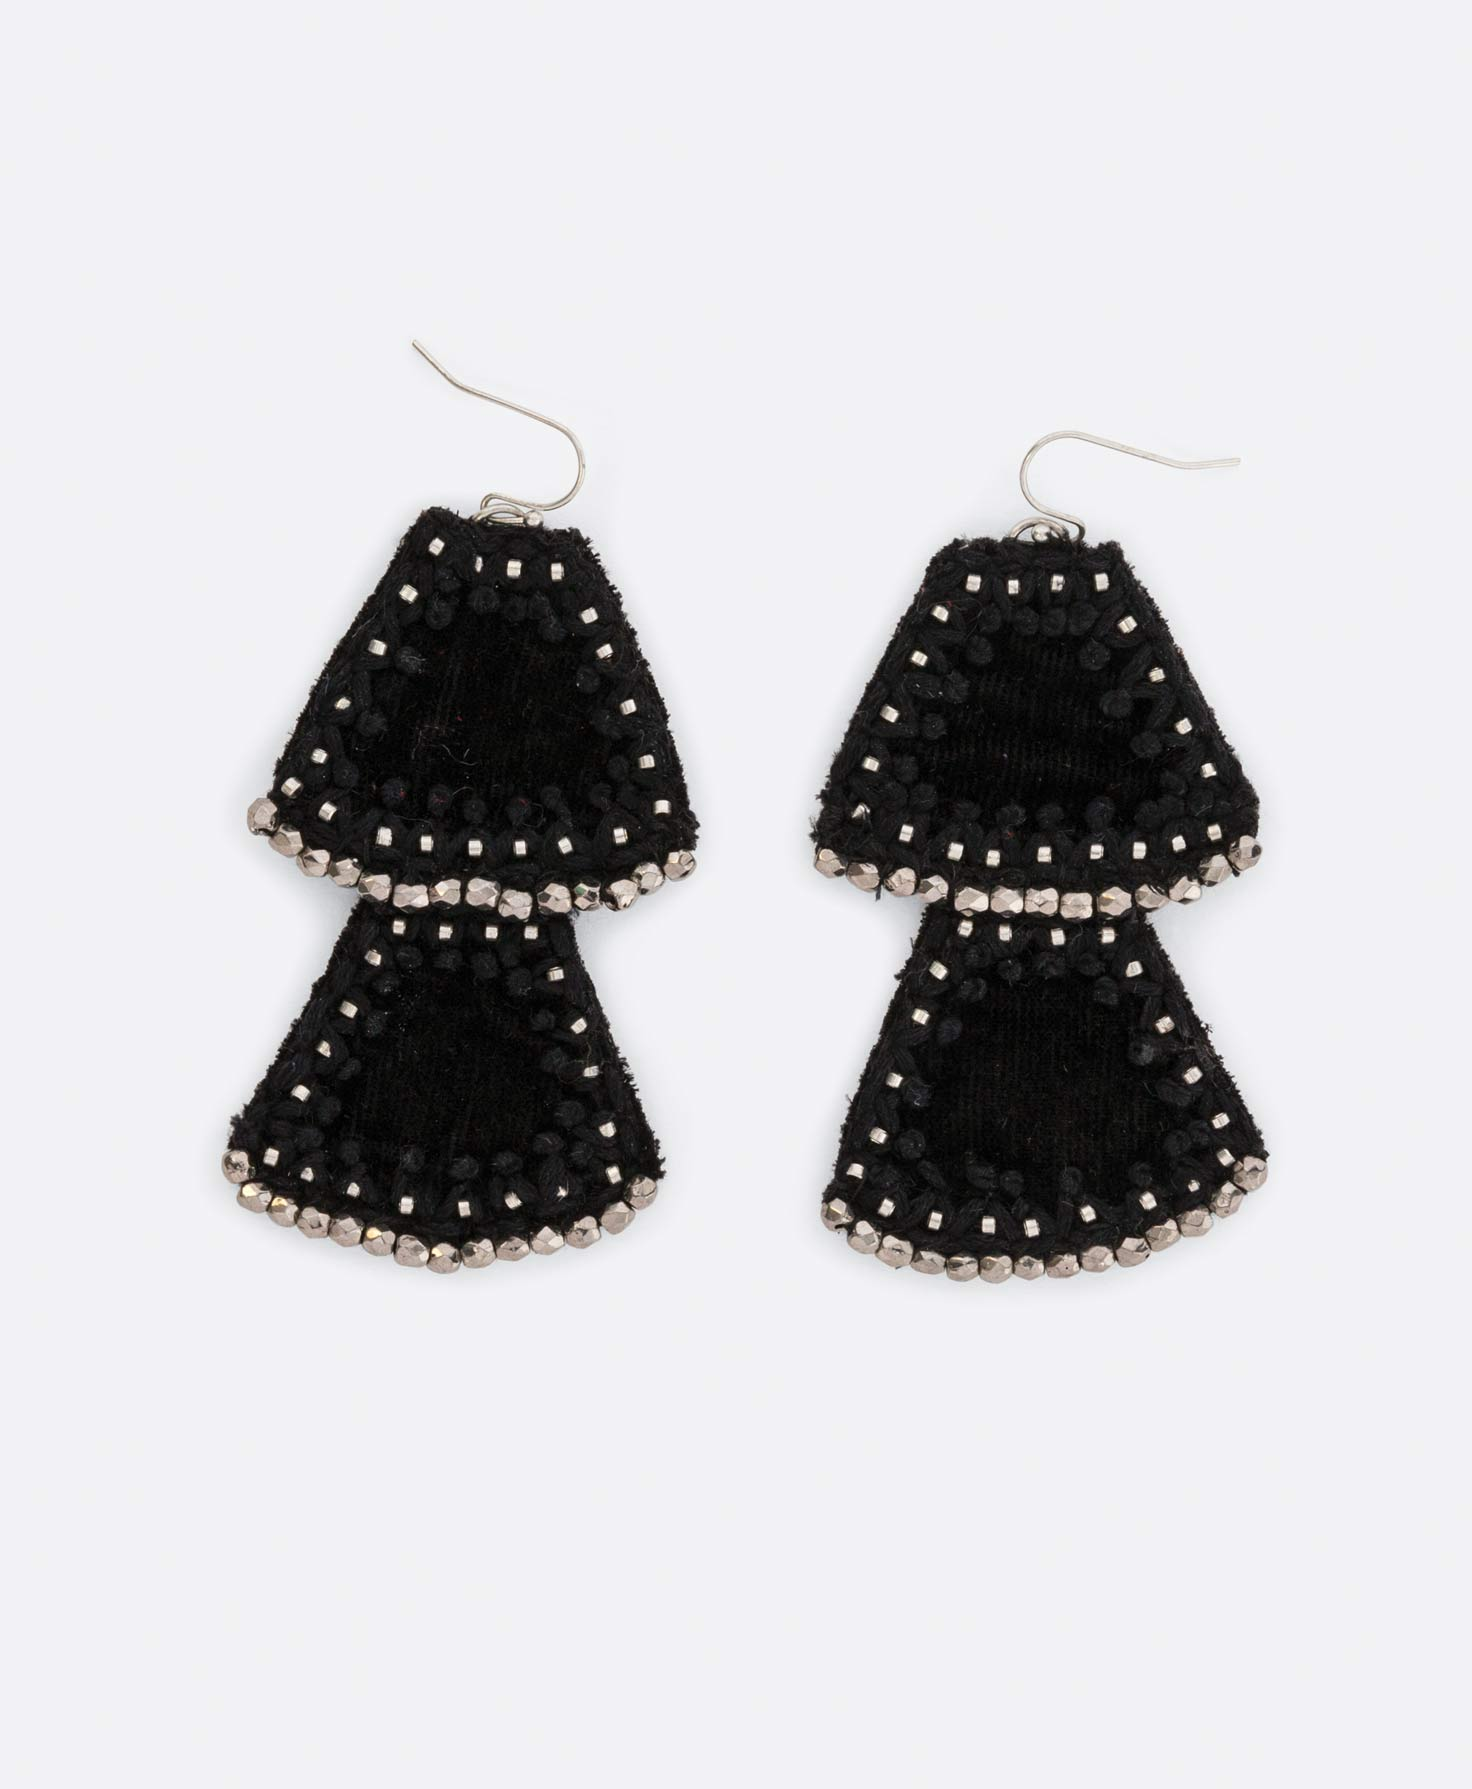 velveteen-earrings,-black-large.jpg